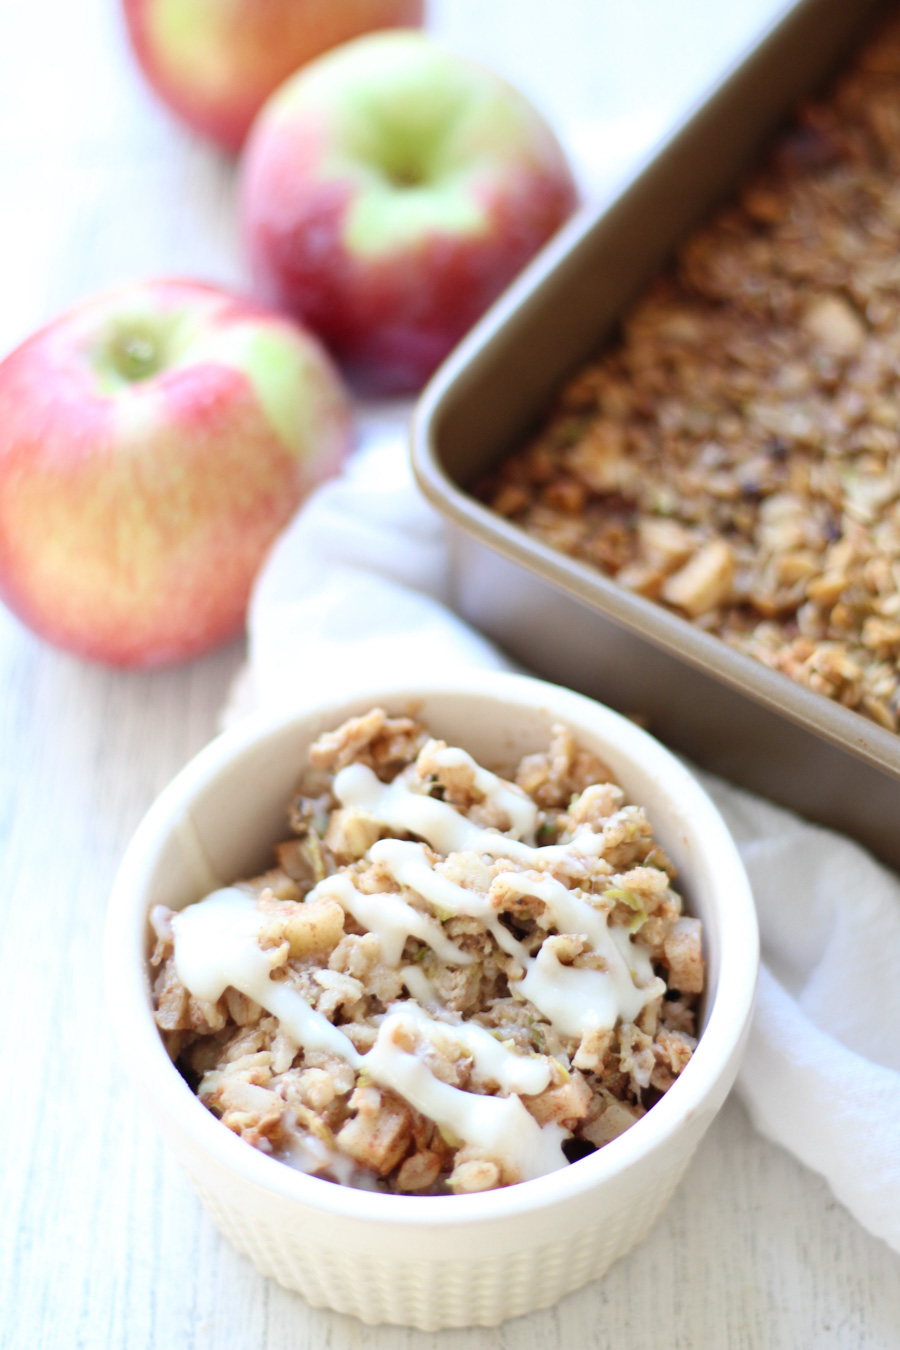 zucchini apple baked oatmeal via toast & thyme & 24 more make-ahead meals via playswellwithbutter | with just a little planning in advance & a little organization over the weekend, you can set yourself up with a week's worth of delicious meals that will come together faster than you could order pizza or pick up chipotle.